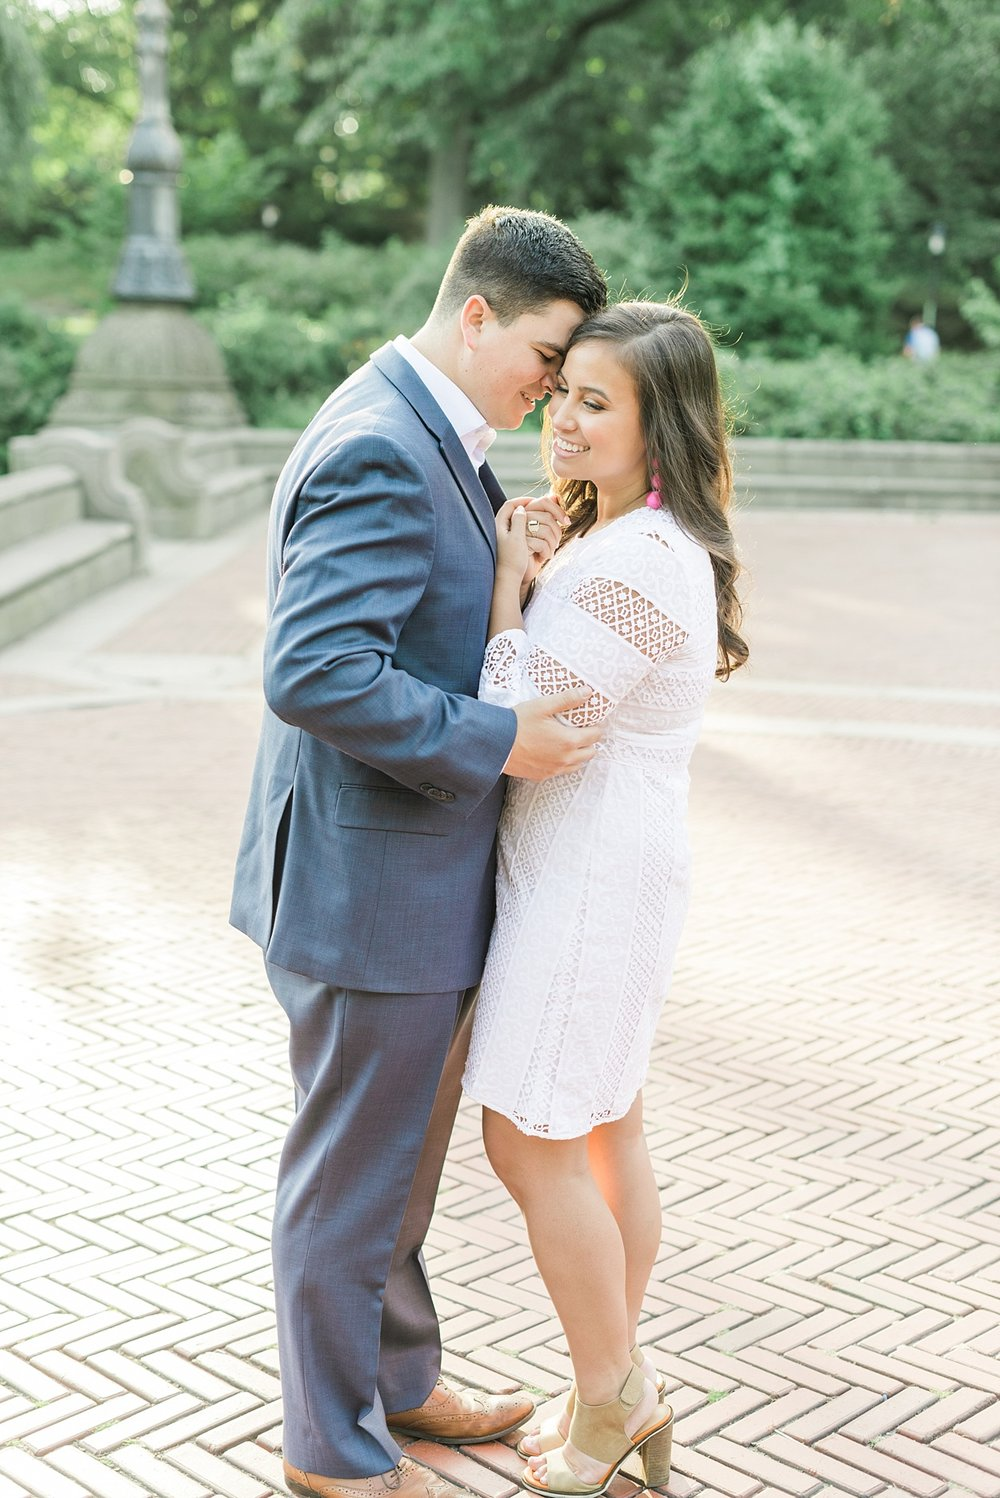 Kimberly Florence Photography_Loeb Boathouse_Central Park Engagement Session_New York City Wedding Photographer_NYC wedding_new york wedding_0056.jpg